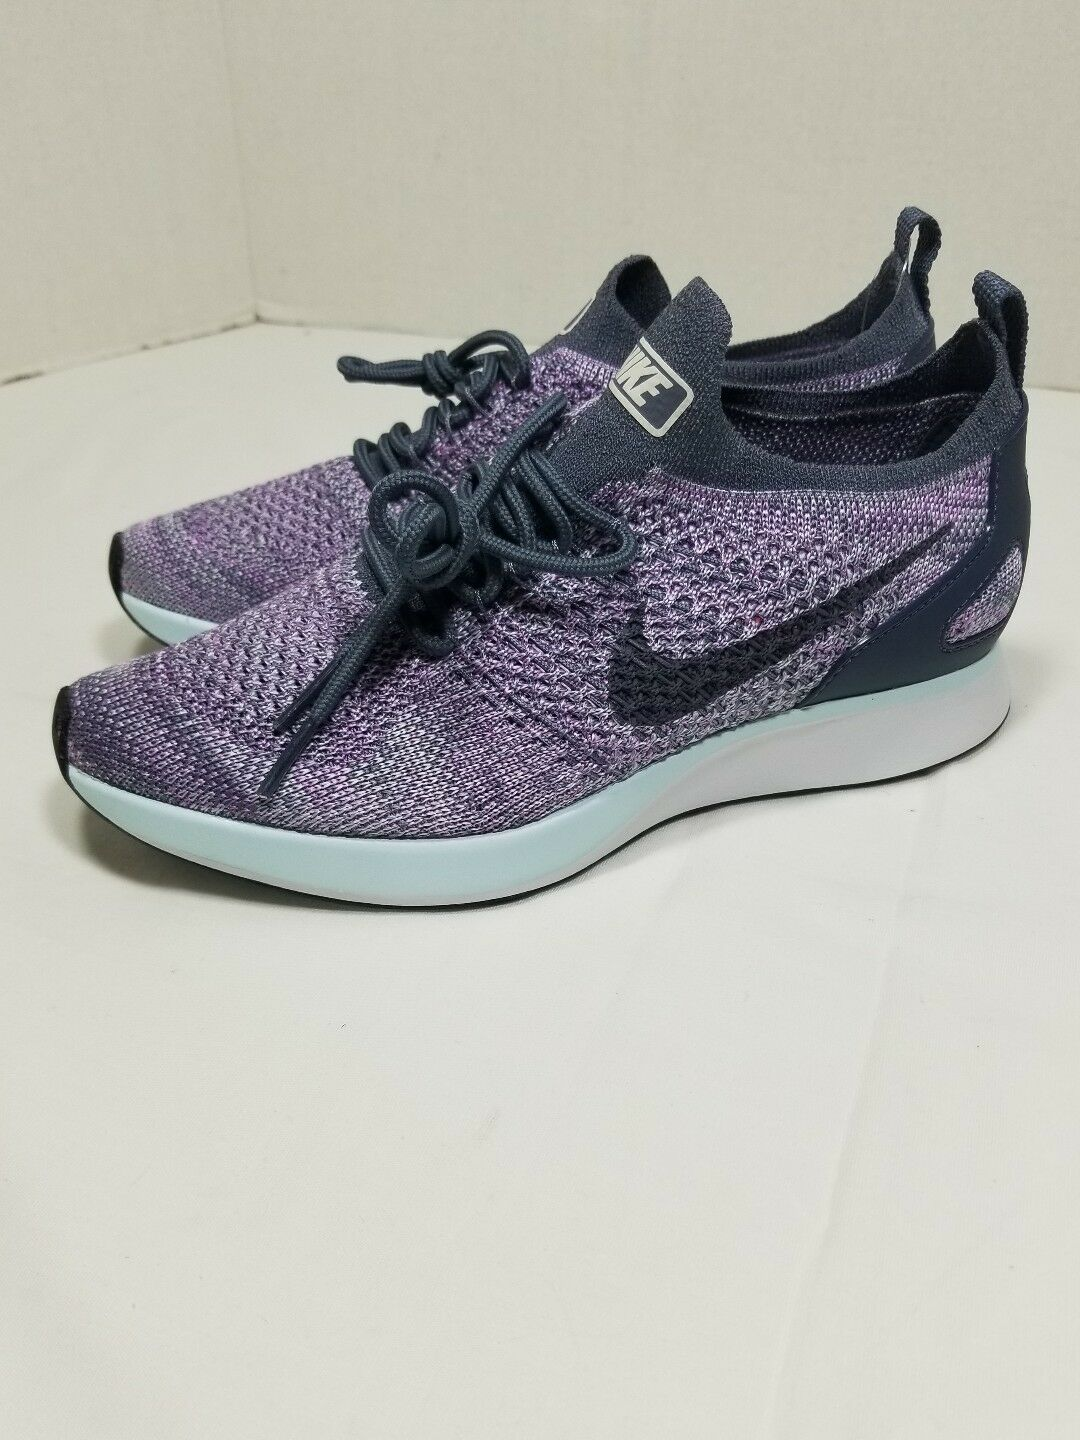 New Shoes Nike Women's Air Zoom Mariah Flyknit Racer Shoes New (AA0521-005) Light Carbon 7 d2b9ba